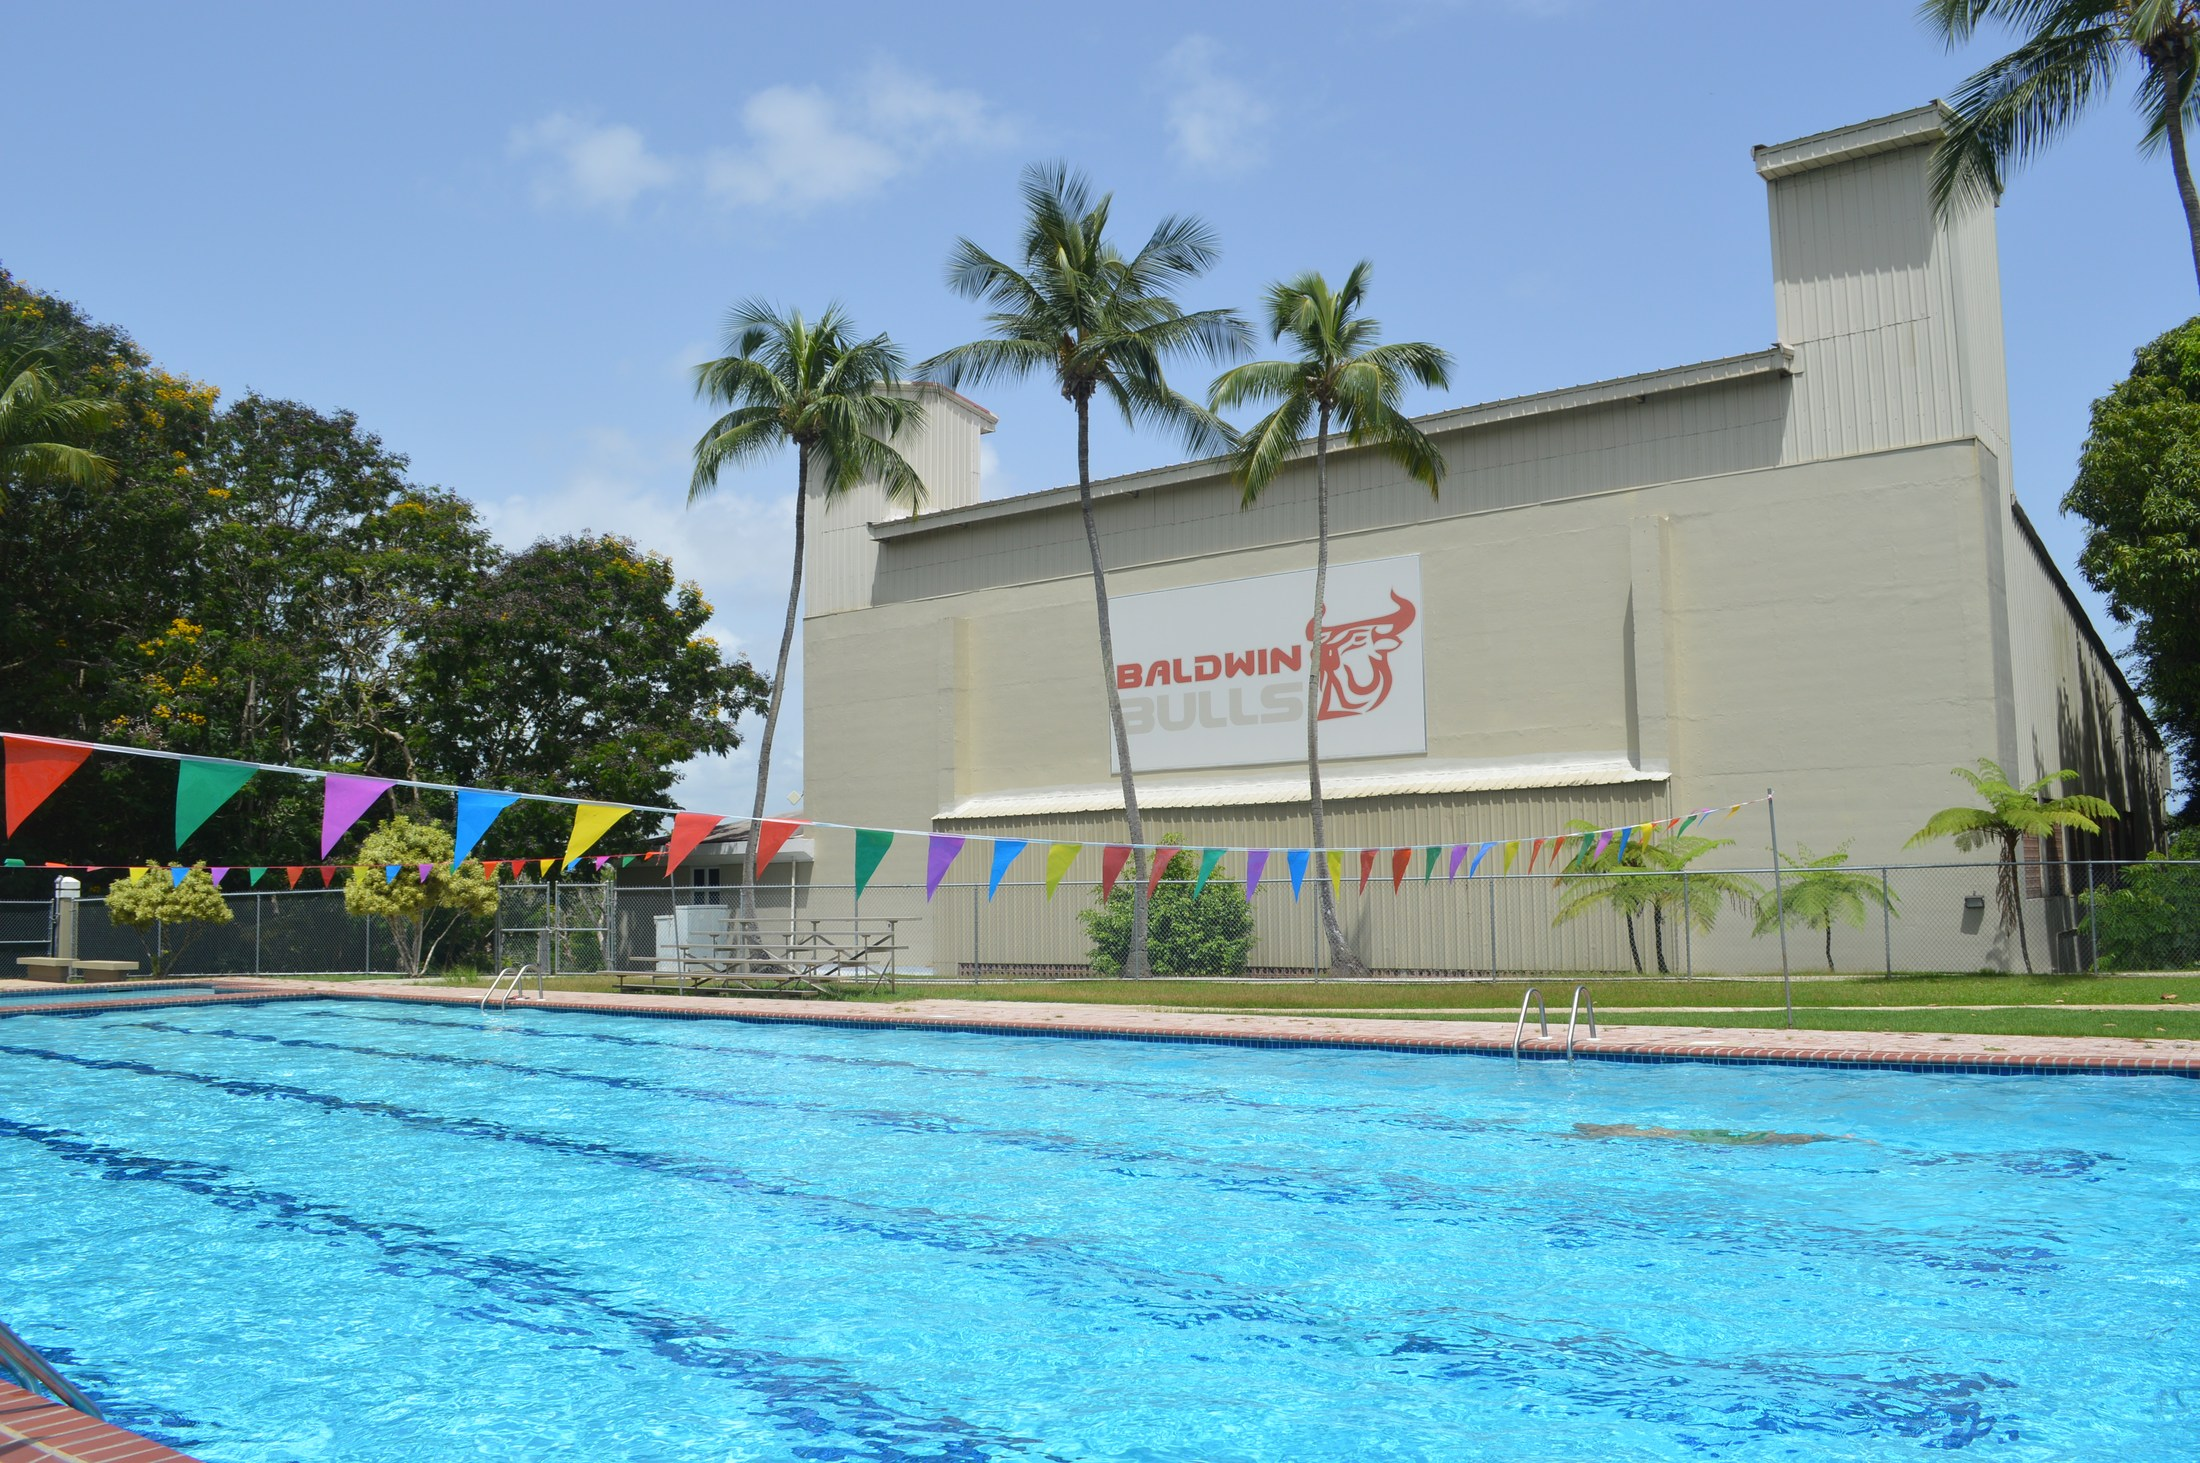 Baldwin School swimming pool